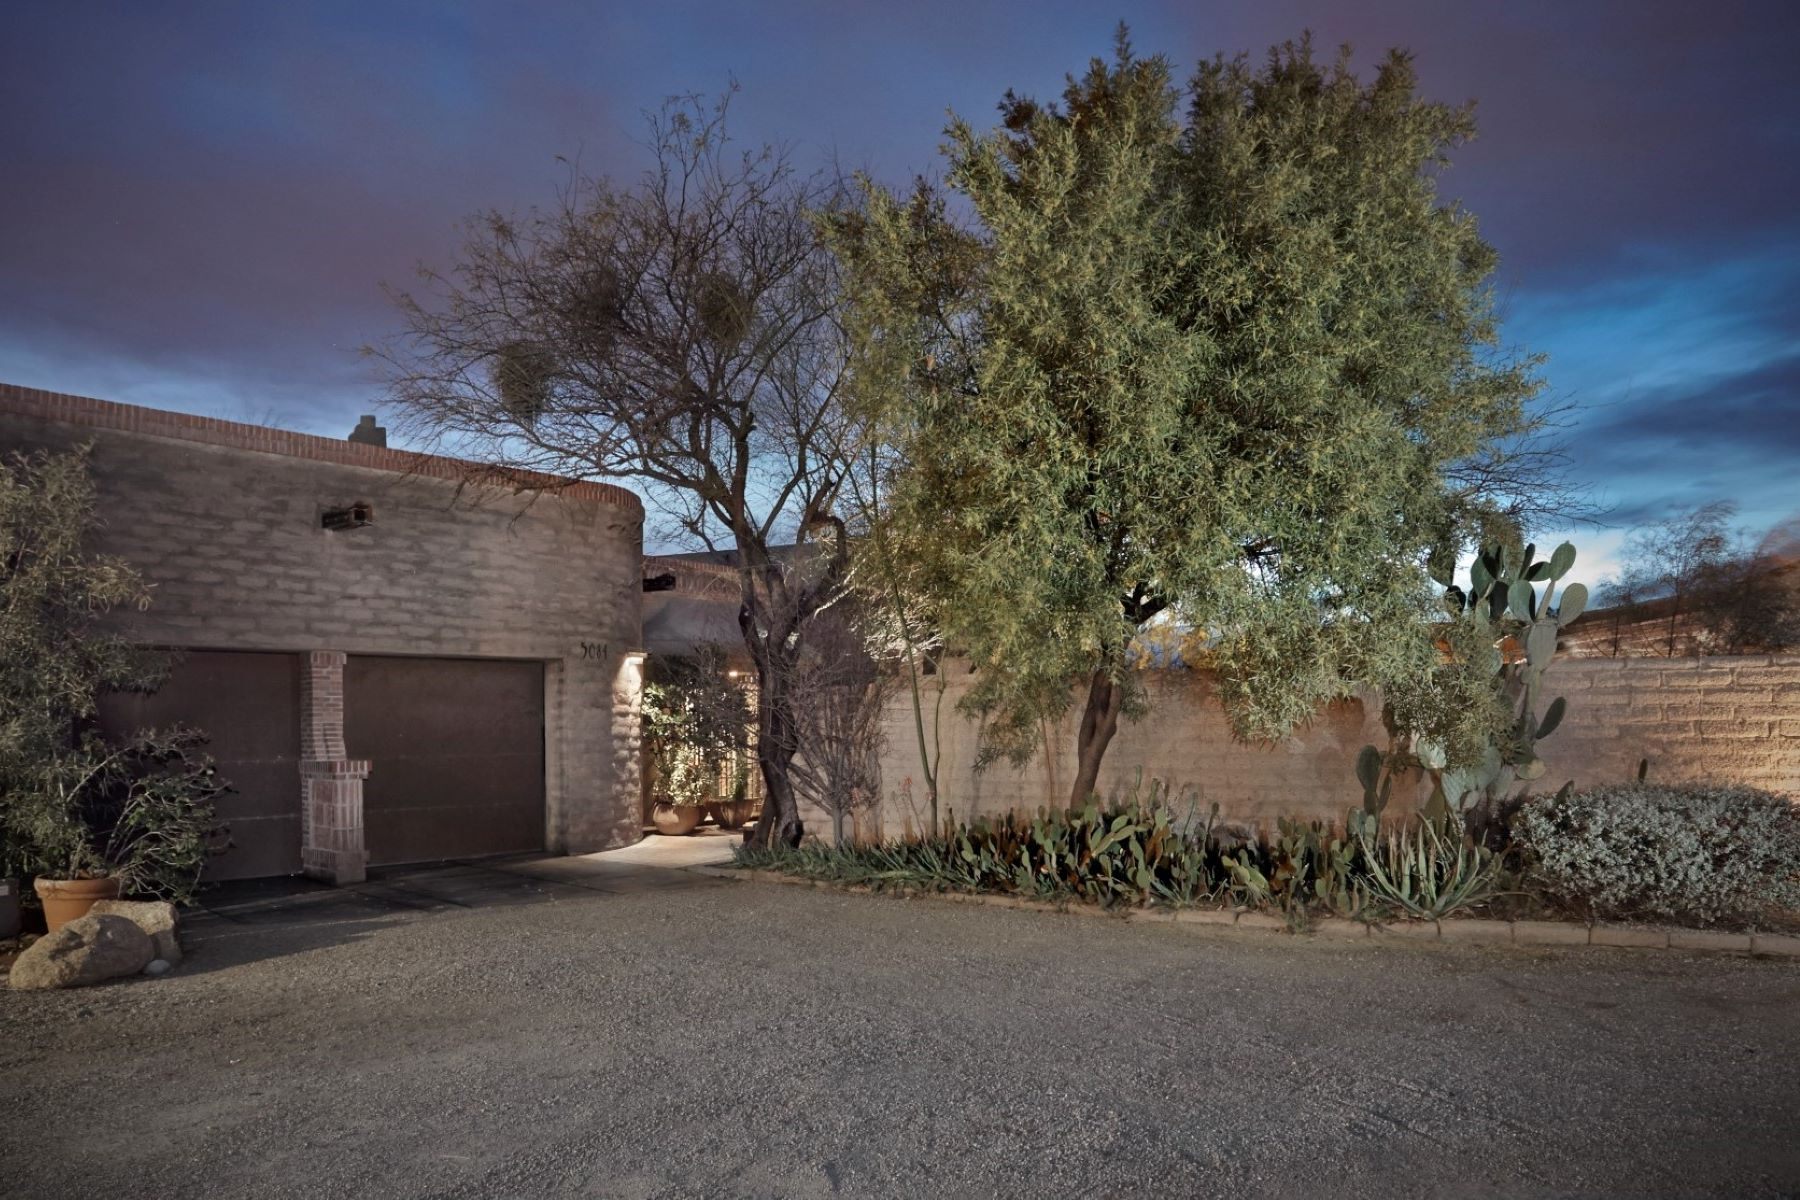 Single Family Home for Sale at Architectural Masterpiece 5084 E Fort Lowell Road, Tucson, Arizona, 85712 United States